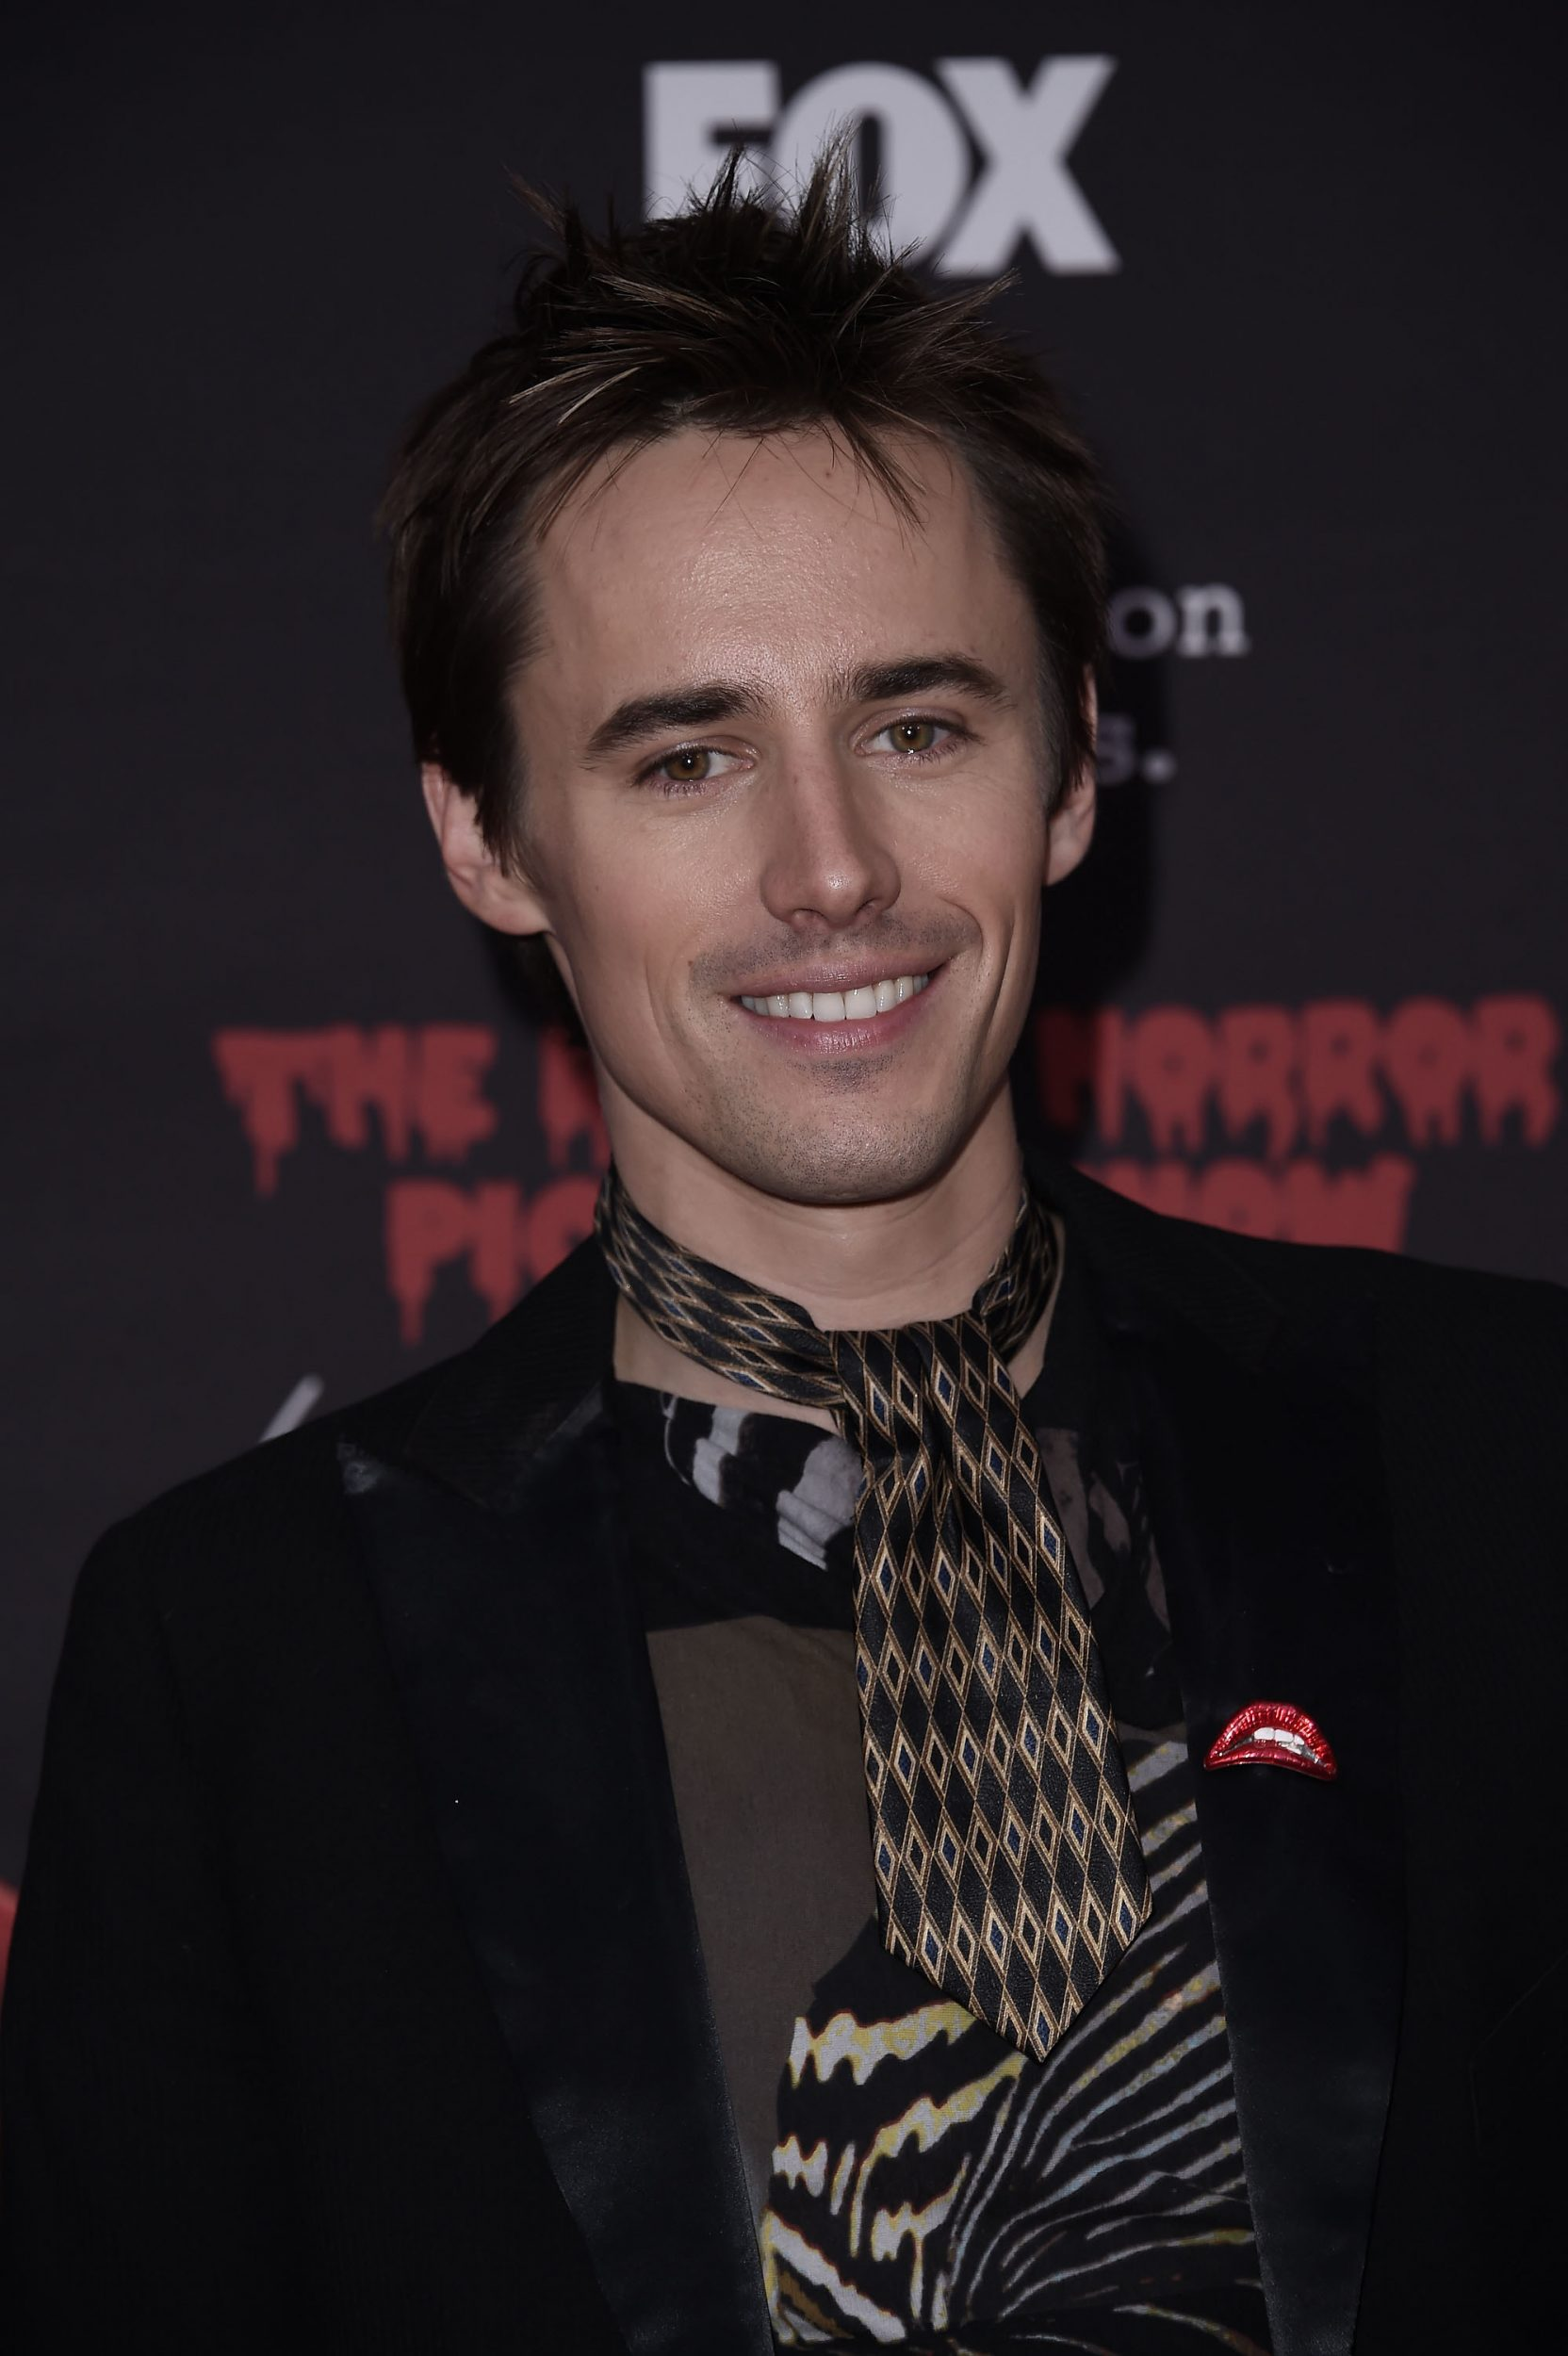 THE ROCKY HORROR PICTURE SHOW: Let's Do The Time Warp Again (and Transylvanians!): Cast member Reeve Carney arrives at THE ROCKY HORROR PICTURE SHOW: Let's Do The Time Warp Again (and Transylvanians!) premiere party red carpet at The Roxy on Thursday, Oct. 13, in Los Angeles, CA. THE ROCKY HORROR PICTURE SHOW: Let's Do The Time Warp Again (And Transylvanians!) premieres Thursday, Oct. 20 (8:00-10:00 PM ET/PT) on FOX. © 2016 FOX BROADCASTING CR: Scott Kirkland/FOX